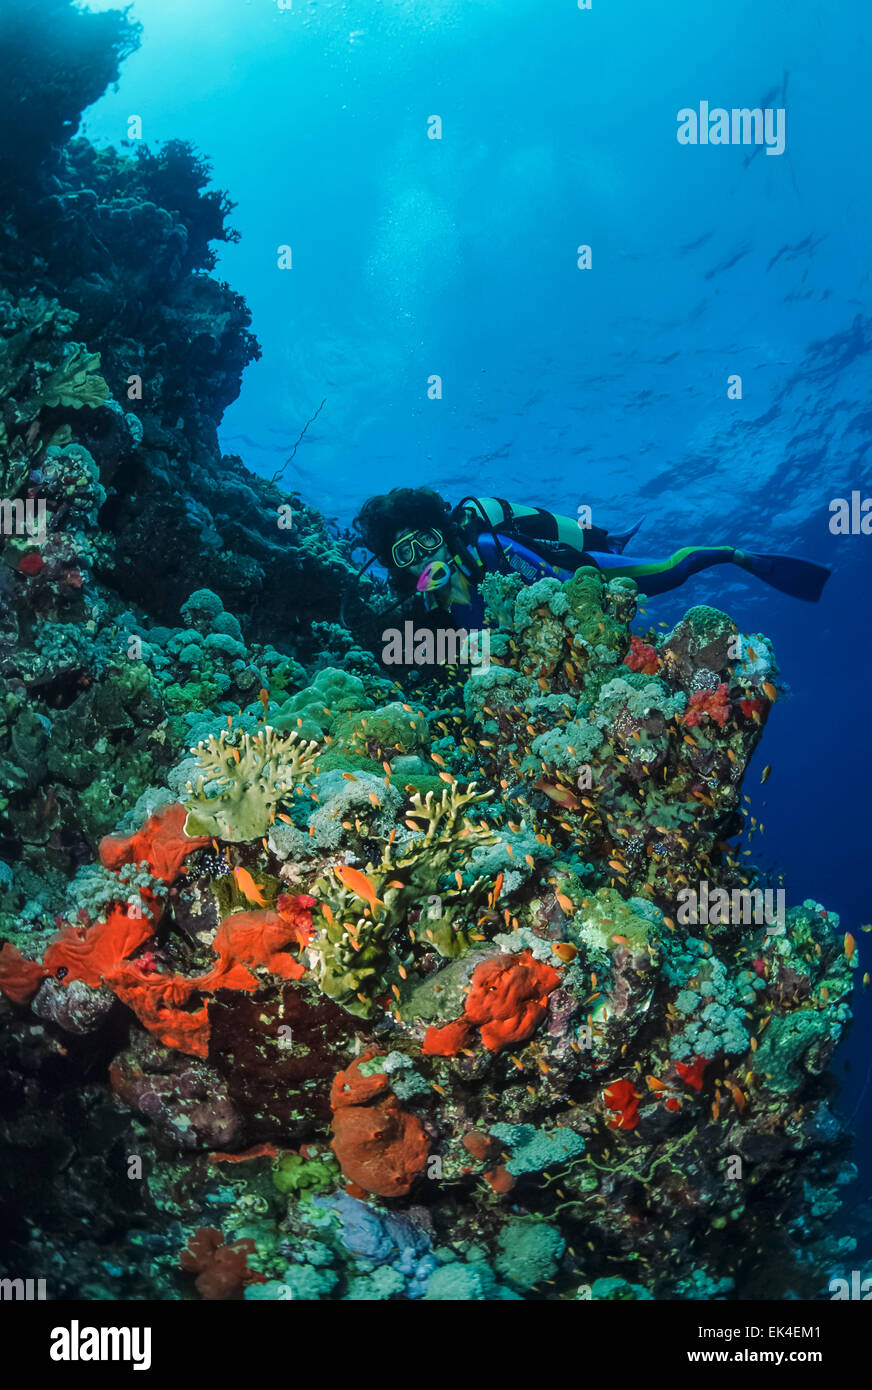 SUDAN, Red Sea, U.W. photo, a diver on the reef with tropical Anthias and fire corals (Millepora complanata) - Stock Image